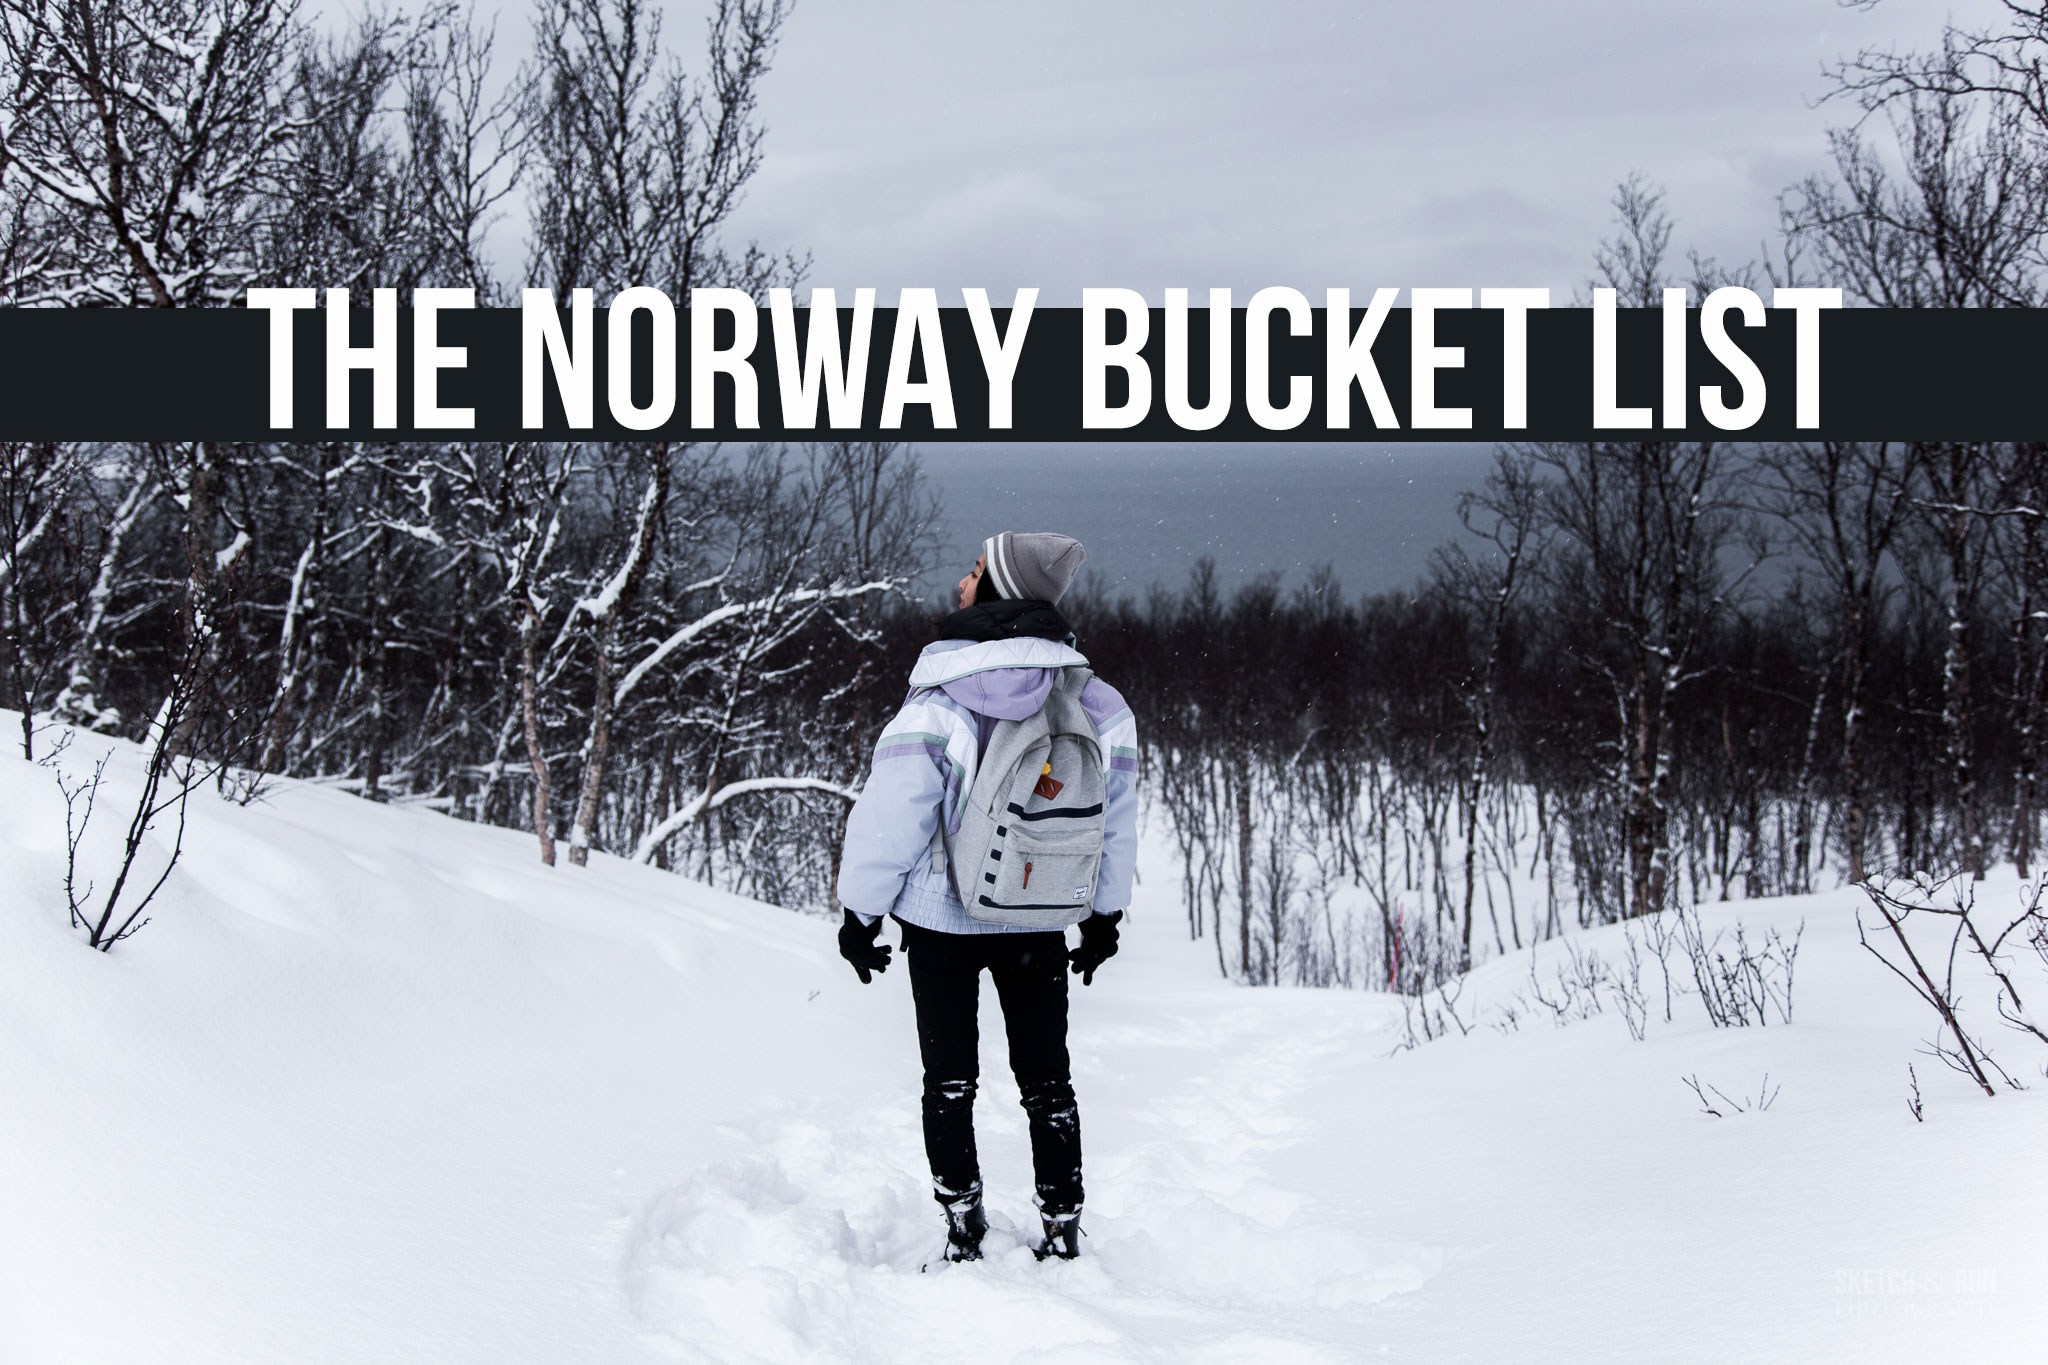 THE NORWAY BUCKET LIST - Travel vlog of a trip to Tromsø, Norway - March 2018